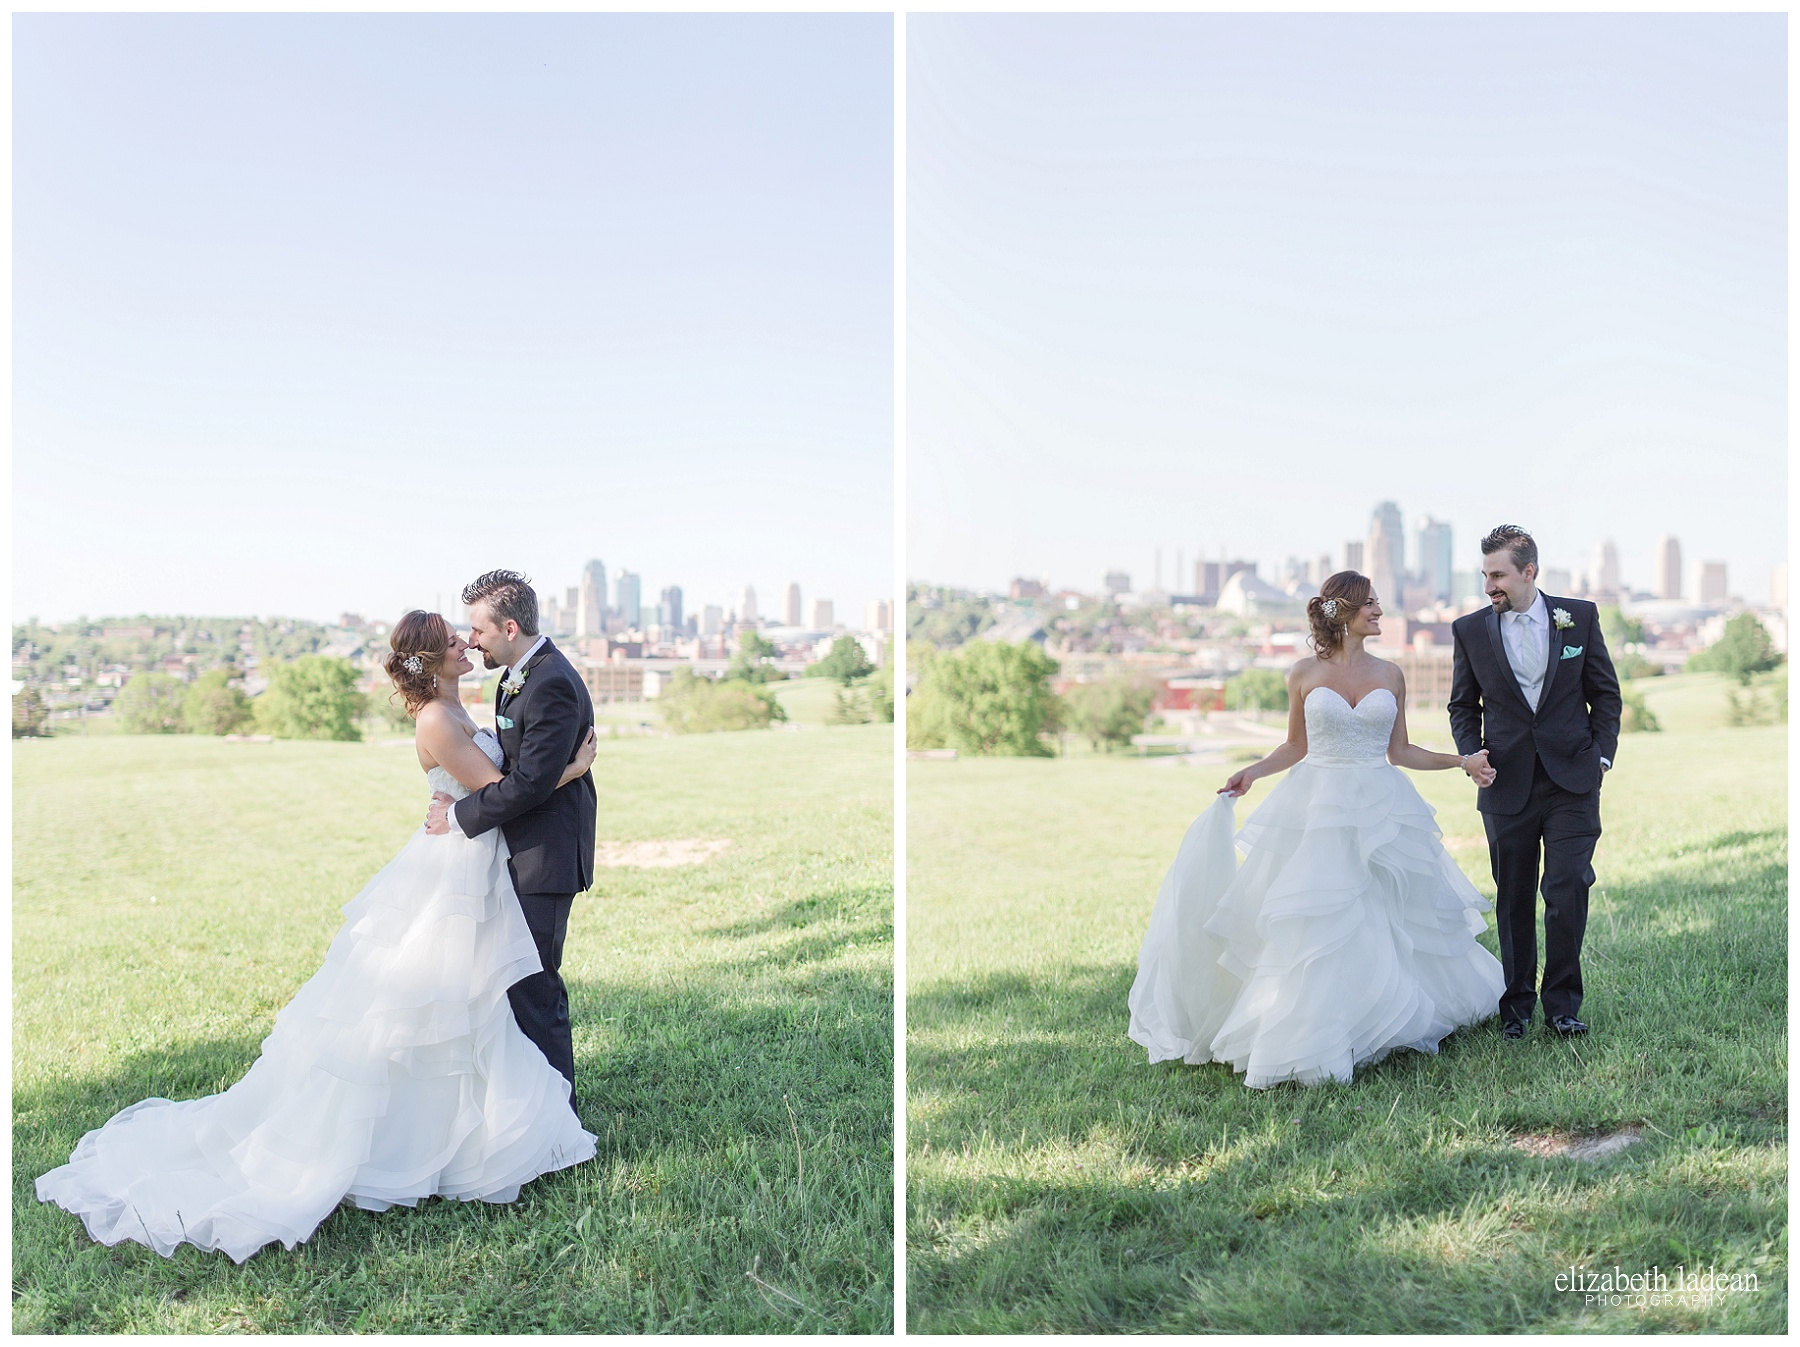 Terrace-on-Grand-Kansas-City-Wedding-Photography-C+J-0506-Elizabeth-Ladean-Photography-photo_0634.jpg